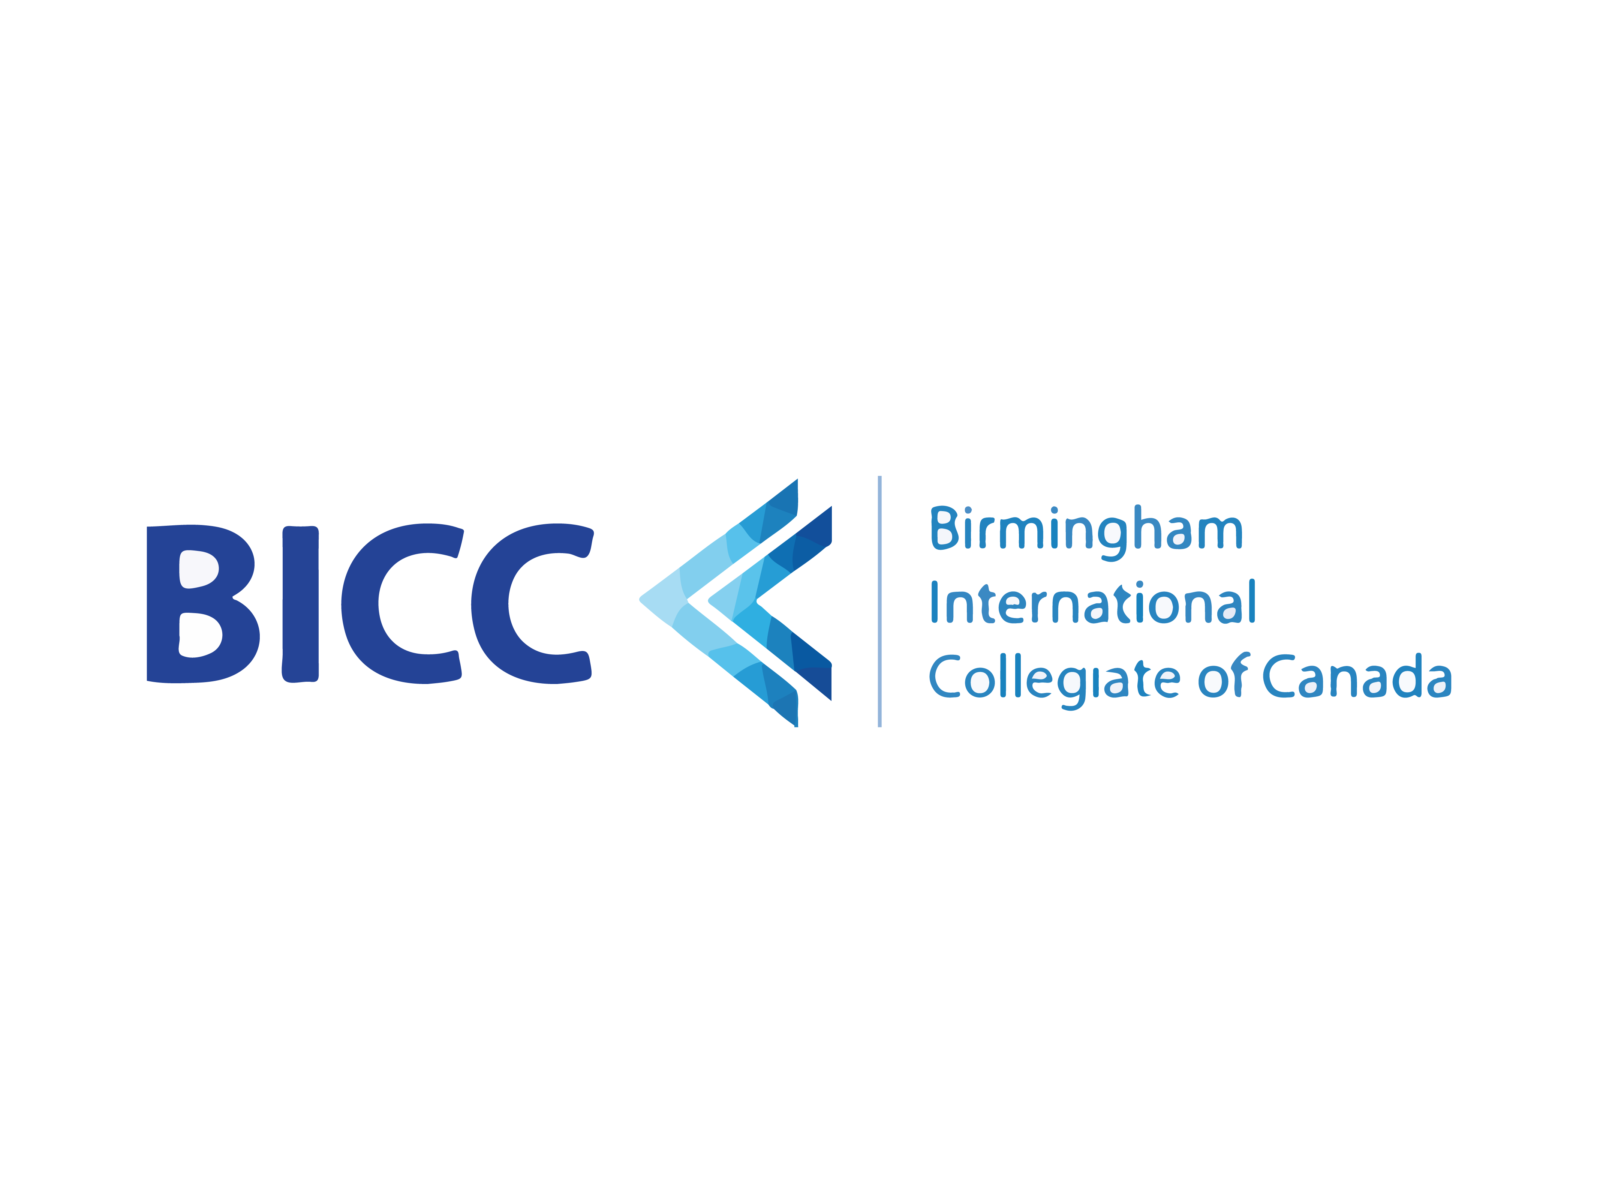 Birmingham International Collegiate of Canada (BICC)